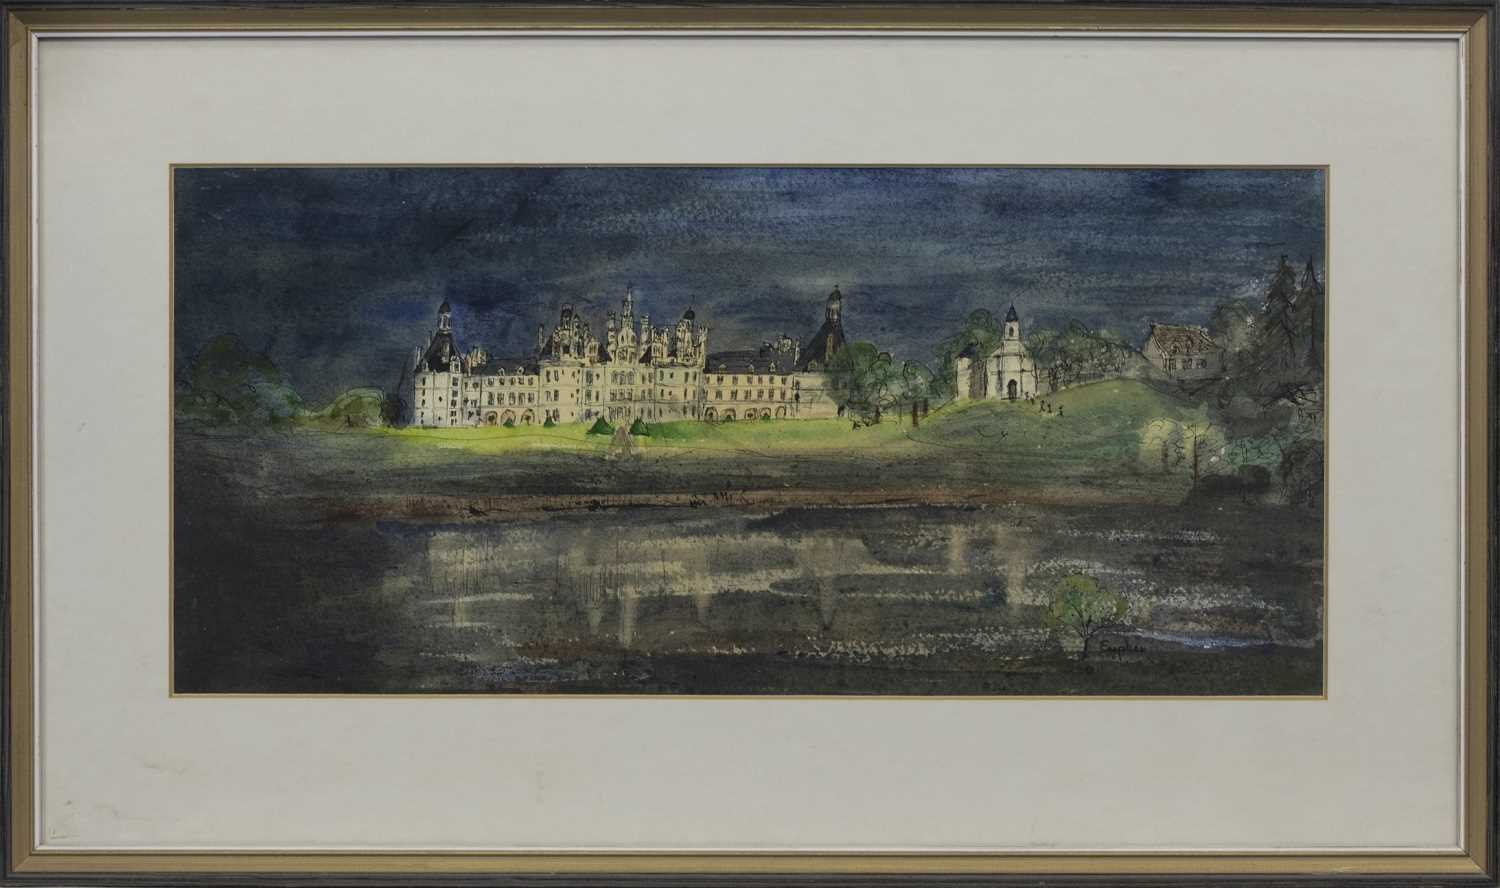 Lot 564 - CHATEAU CHAMBORD FLOODLIT, A MIXED MEDIA ON PAPER BY EUPHEN ALEXANDER